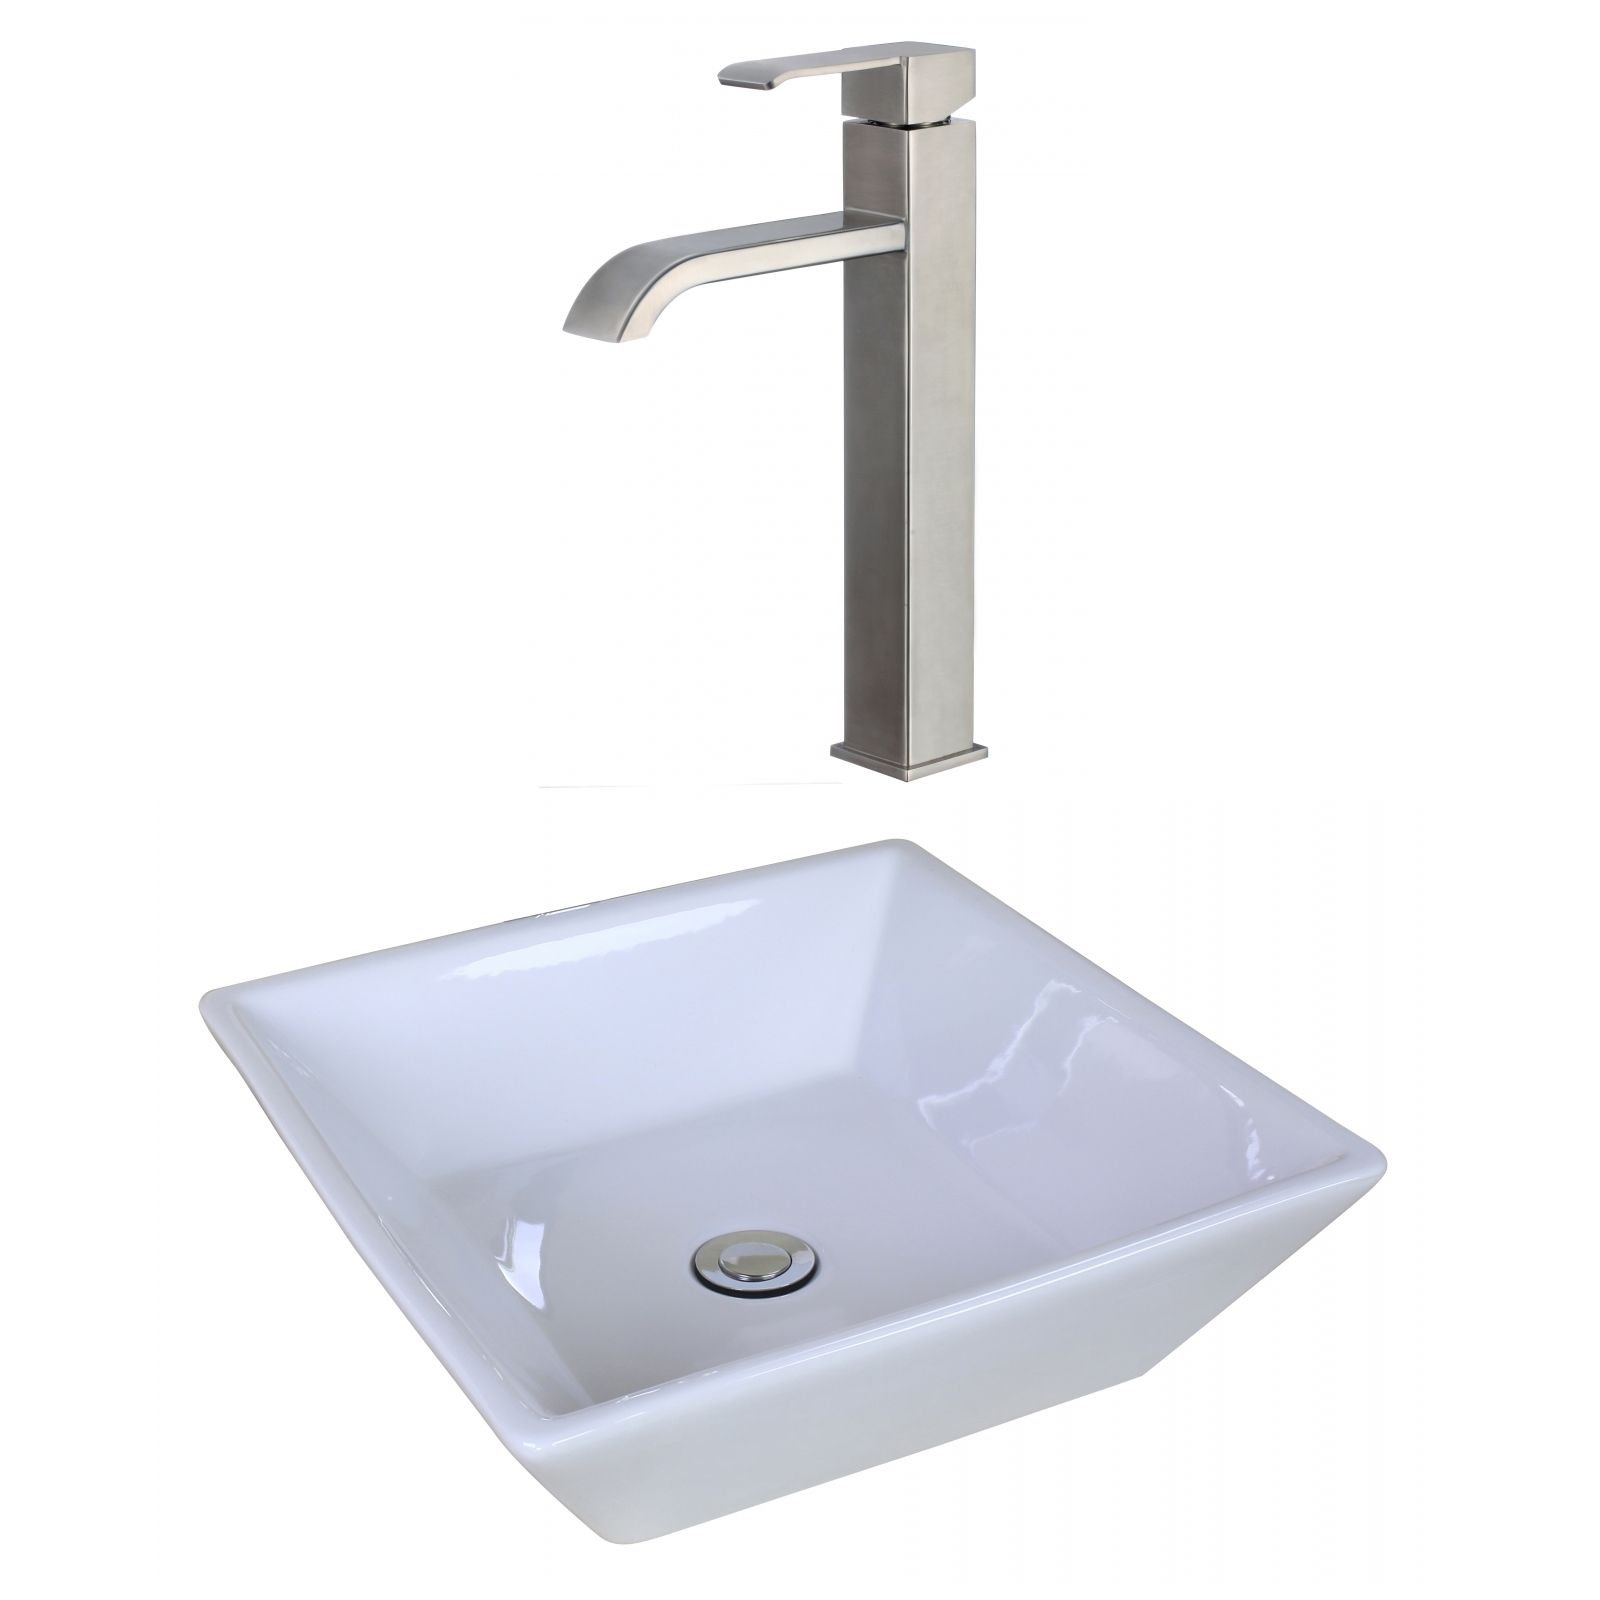 American Imaginations 16.14-in. W x 16.14-in. D Square Vessel Set In Color With Deck Mount Cupc Faucet